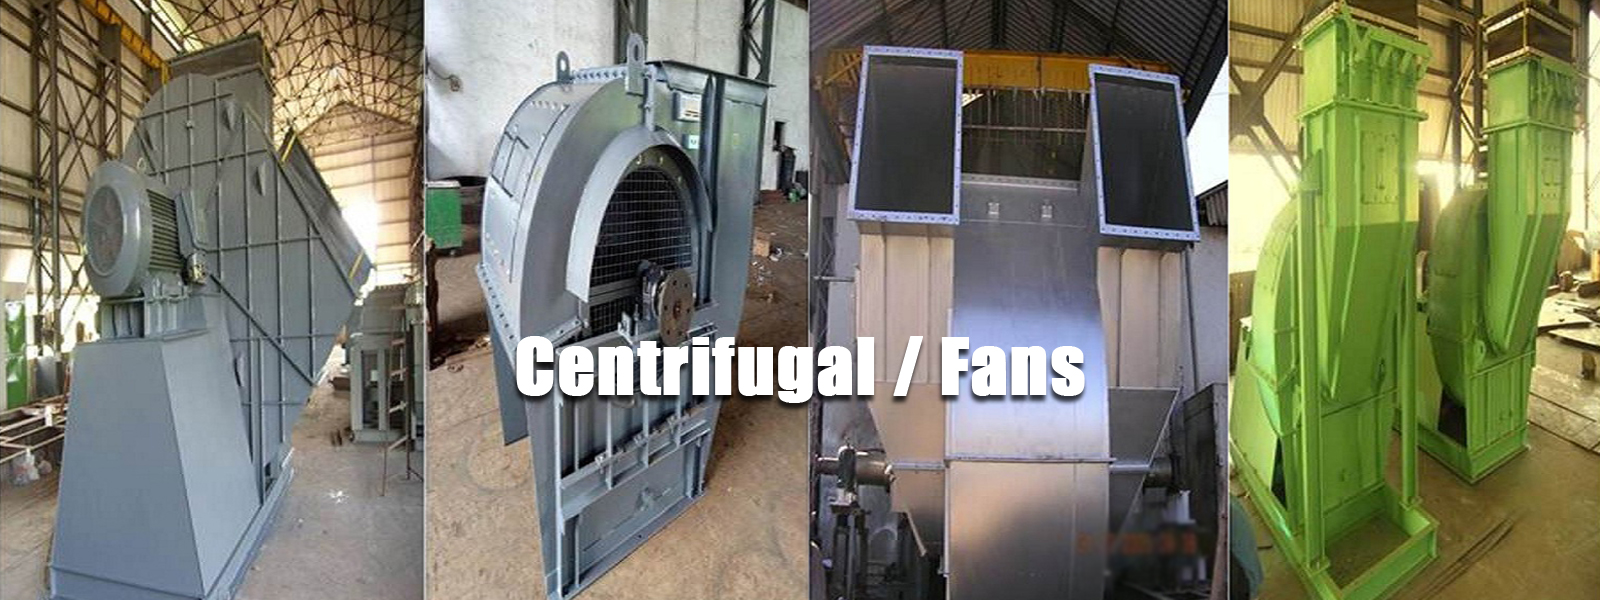 cyclone dust collector manufacturers, cyclone dust collector manufacturer in india, baghouse manufacturers, baghouse manufacturers india, multiclone dust collector, multiclone dust collector manufacturers, multiclone dust collector manufacturers in india, reverse air baghouse manufacturers, scrubber manufacturers in india, venturi scrubber manufacturers, industrial fan manufacturers, industrial fan manufacturers in india, axial fan manufacturers, axial fans manufacturers in india, id fan manufacturers, id fan manufacturers in india,centrifugal fan manufacturers, centrifugal fan manufacturers in india, industrial blower manufacturers, industrial blower manufacturers in india, tube axial fan manufacturers, tube axial fans manufacturers india, dust collection system manufacturers, dust collector system manufacturer india, dust collector system, fume extraction system, fume extraction system manufacturers ,pyrolysis plant manufacturers in india, pyrolysis plant, rotary dryer manufacturers, incinerator manufacturer in india, industrial waste incinerator manufacturers, force draft cooler,recuperator manufacturer in india, ladle manufacturers in india, aluminium extrusion plant manufacturers in india, turnkey projects companies in india, hot air generator manufacturers in india, plate bending machine manufacturers in india, Rotary kiln manufacturers, furnace manufacturers in india, calciner manufacturers, bag filter manufacturers in india, bag filter manufacturers, cartridge filter manufacturers in india, cyclone dust collector,Battery Cutting Machine, battery cutting machine manufacturers, battery cutting machine manufacturers in india,Battery Recycling Plant, battery recycling plant in india, battery recycling plant manufacturers,Battery Recycling Technology ,battery recycling technology india, lead acid battery recycling companies in india,Disposal technology for Lead Acid Battery Waste,disposal technology for lead acid battery waste india.